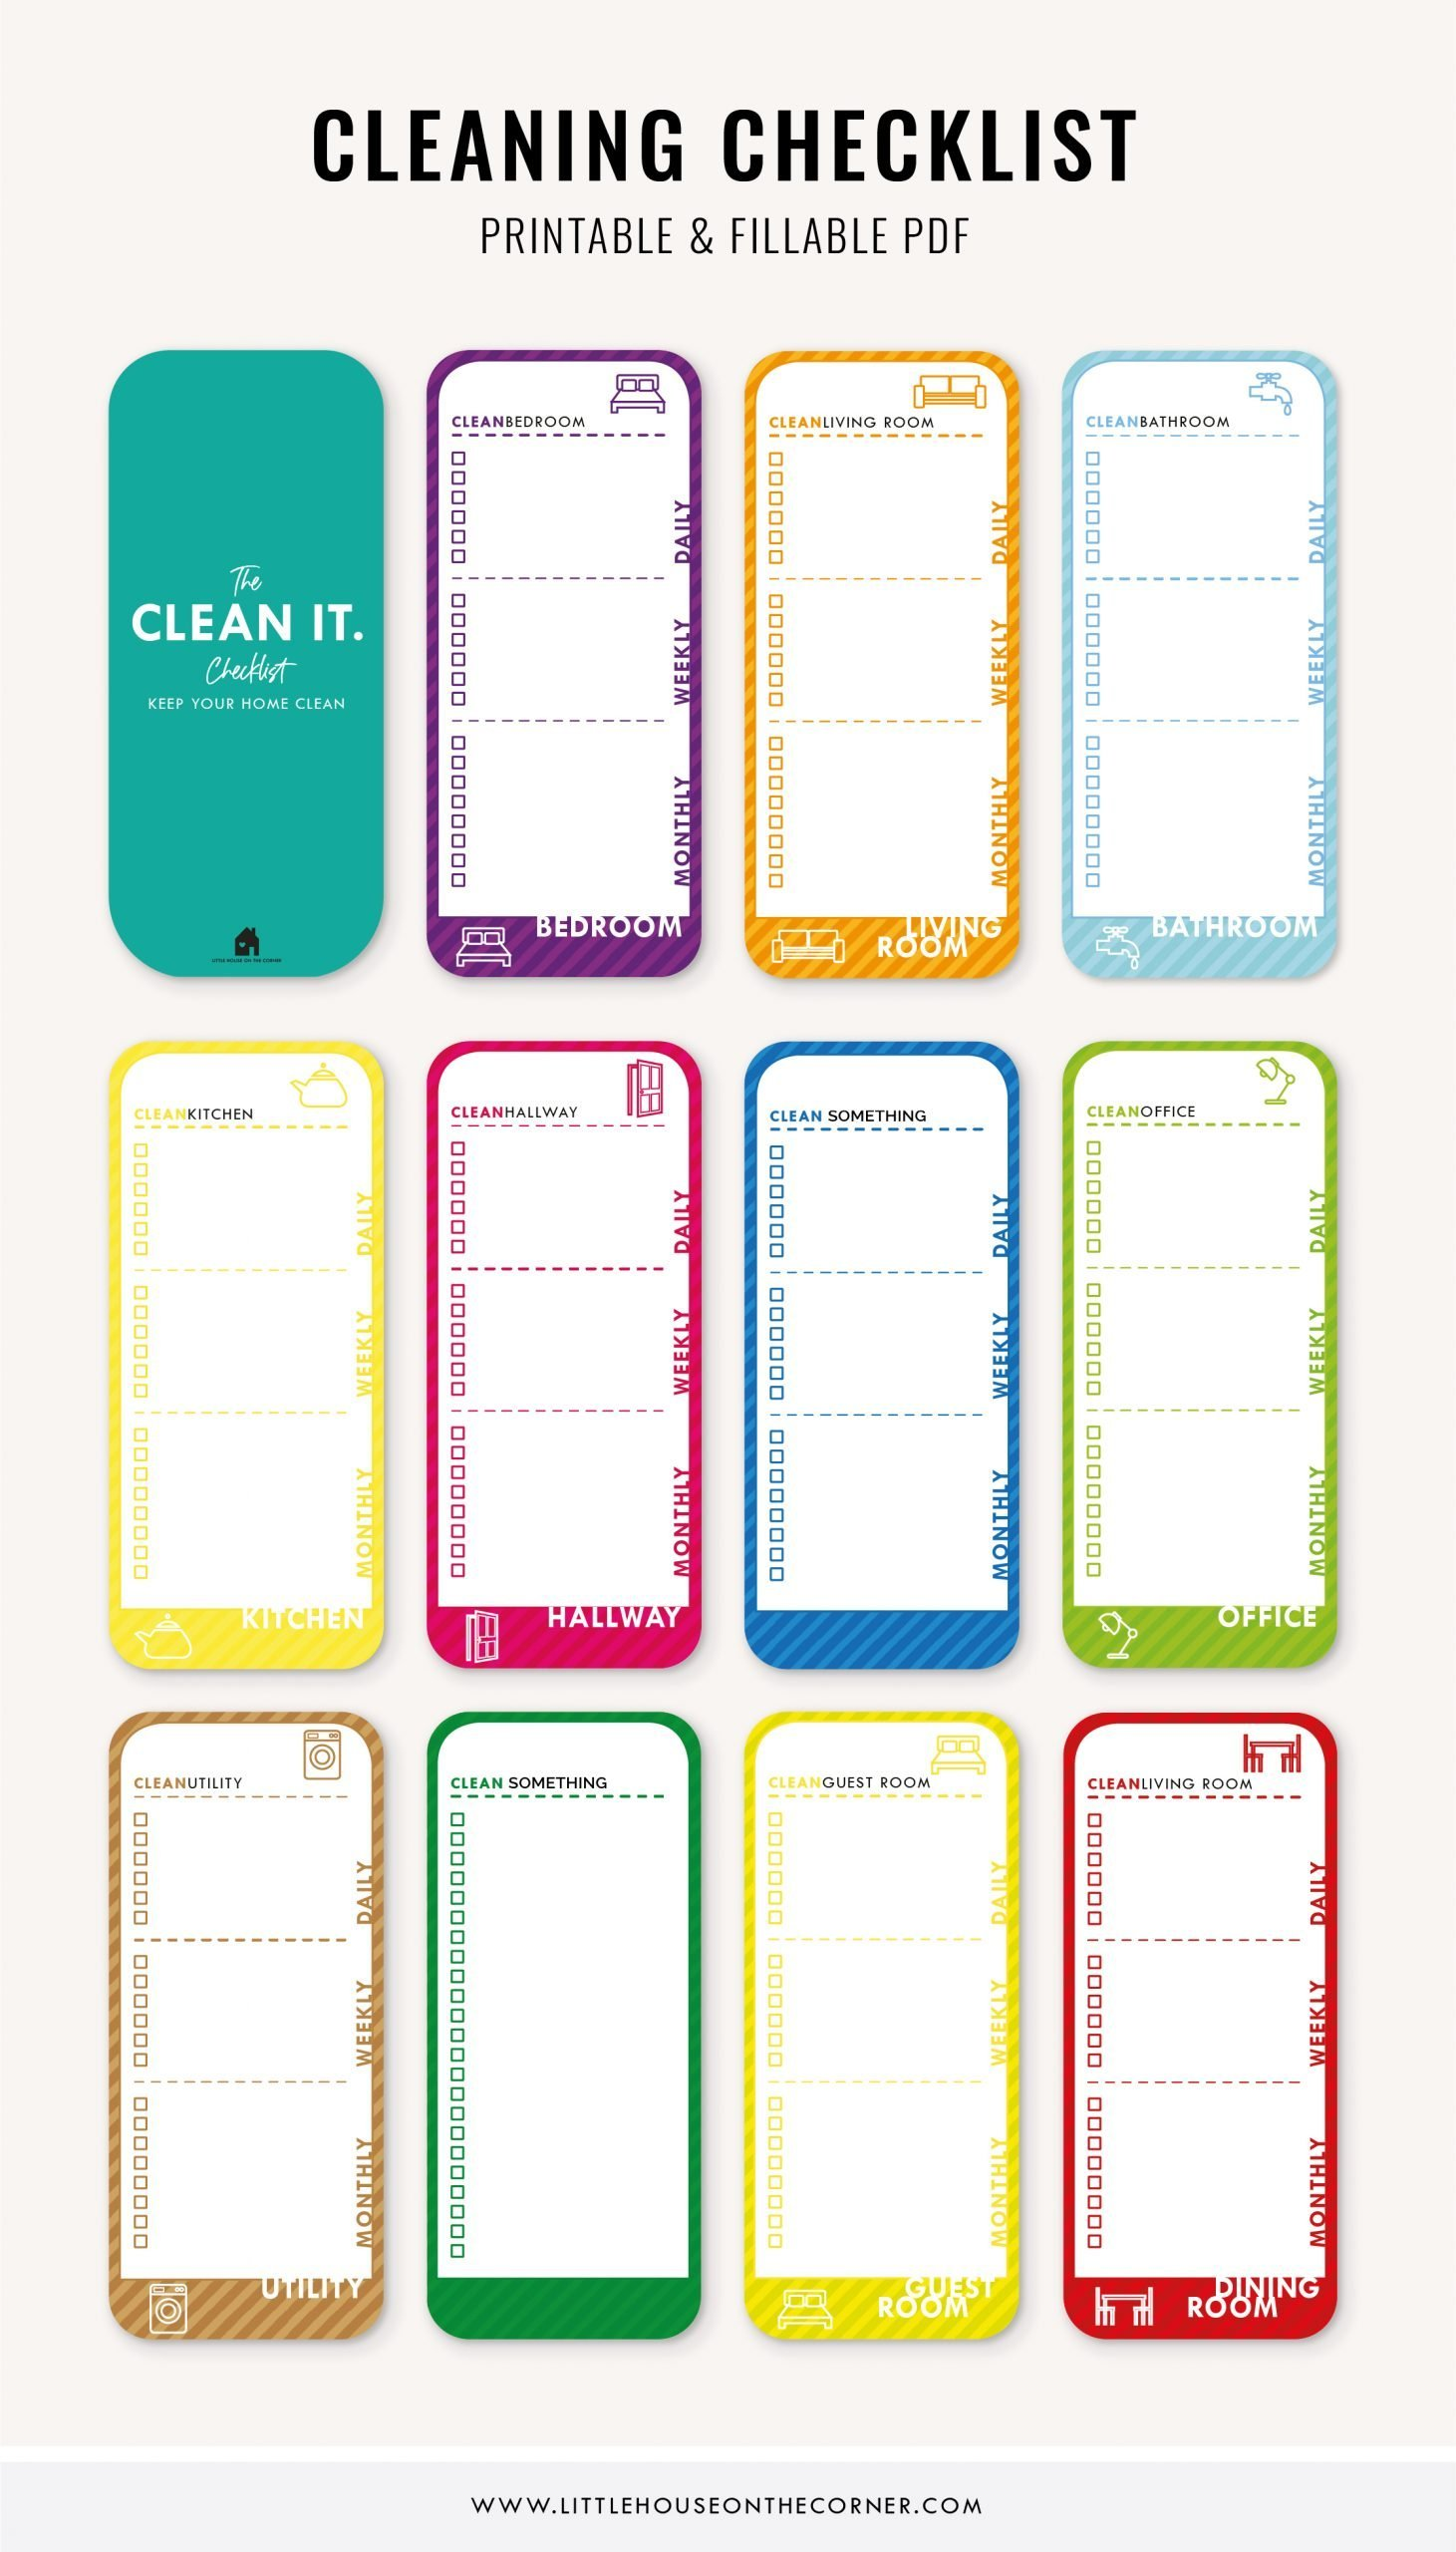 Customizable Cleaning Checklist